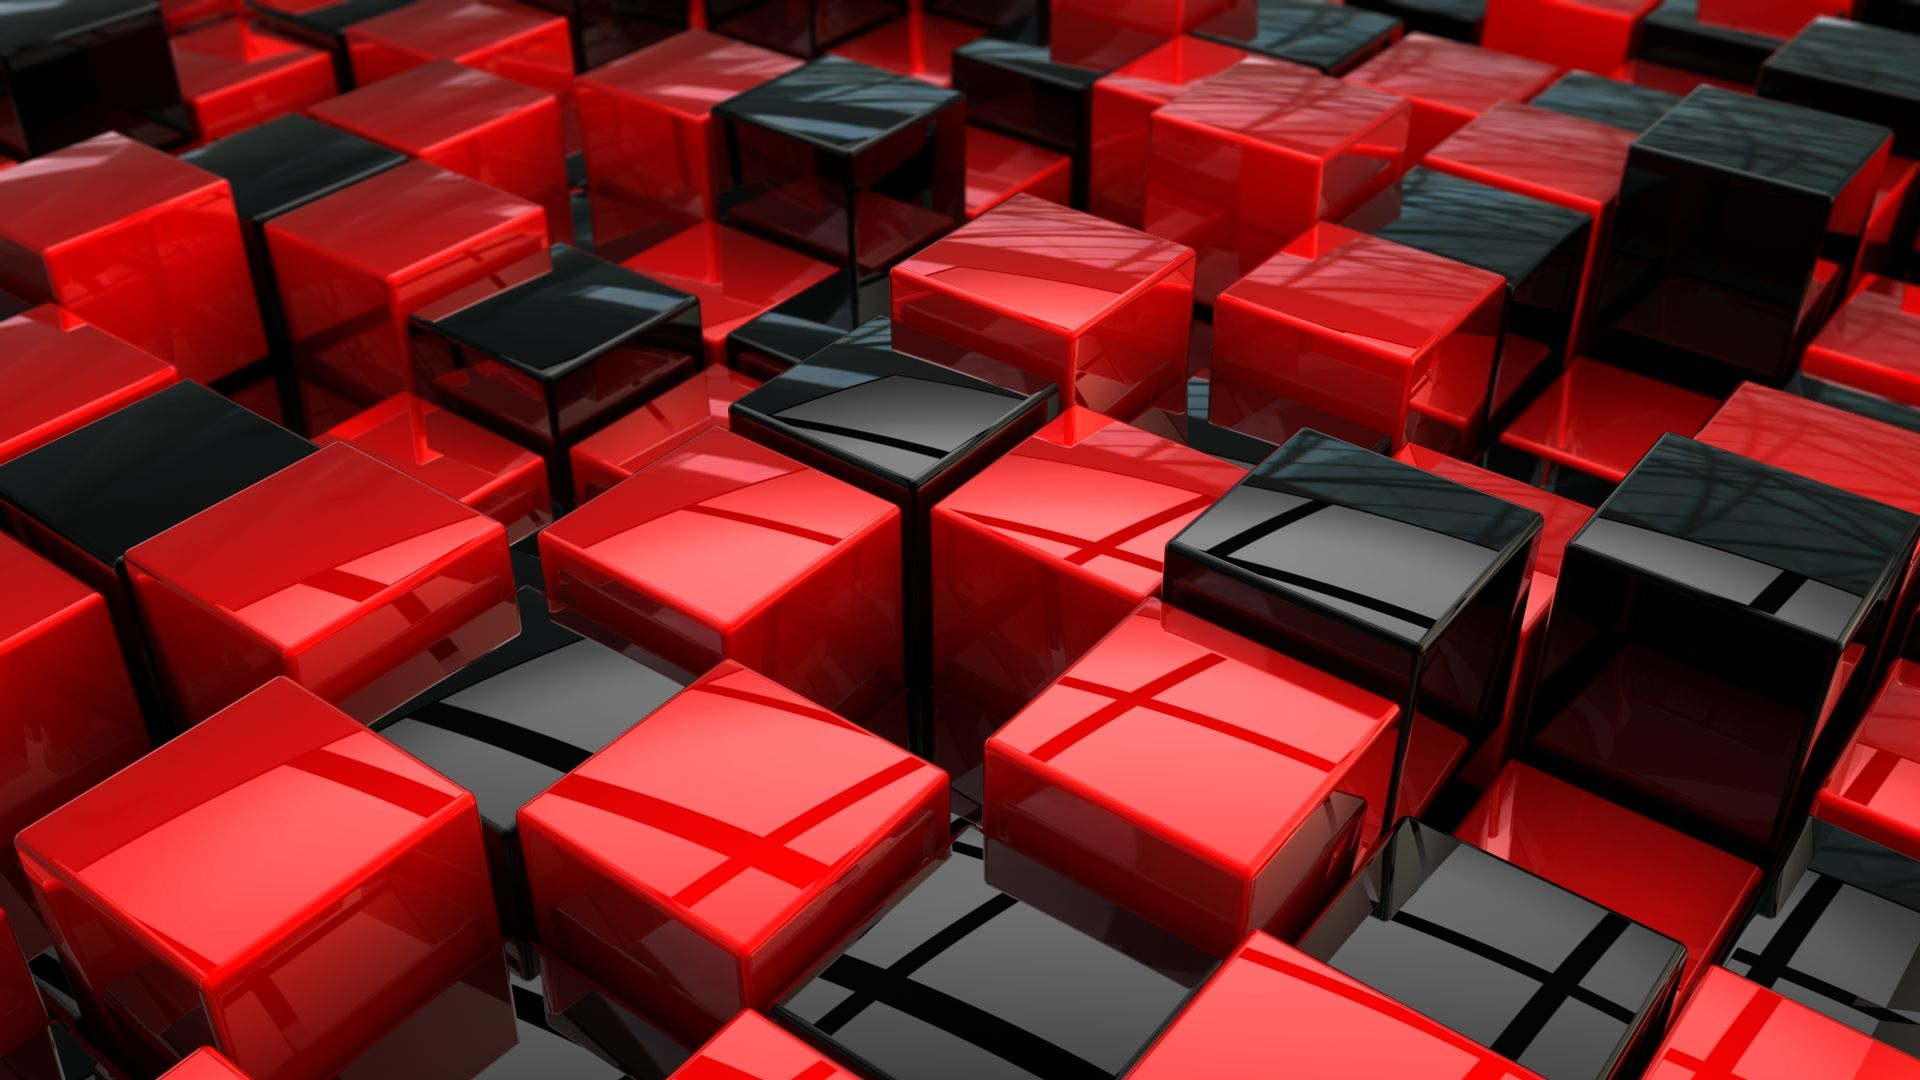 Hd wallpaper red and black - Red And Black Cubes Wallpaper